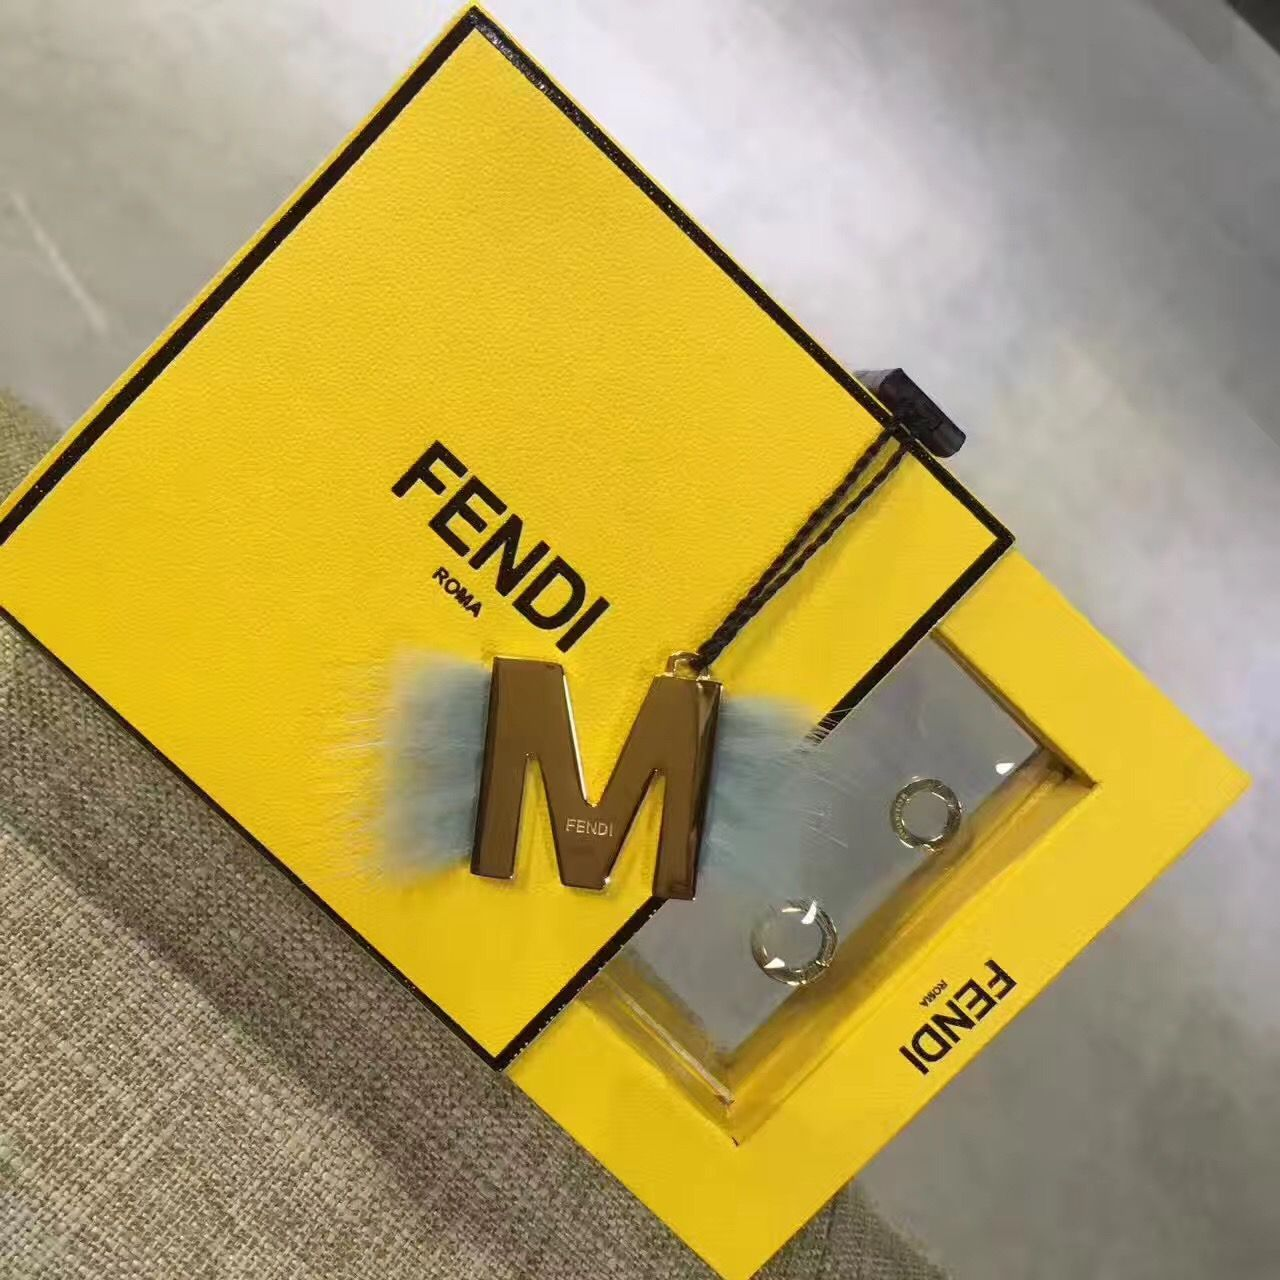 Fendi letter necklace inviview fendi letters necklace bag charms keychain jewelry aloadofball Gallery